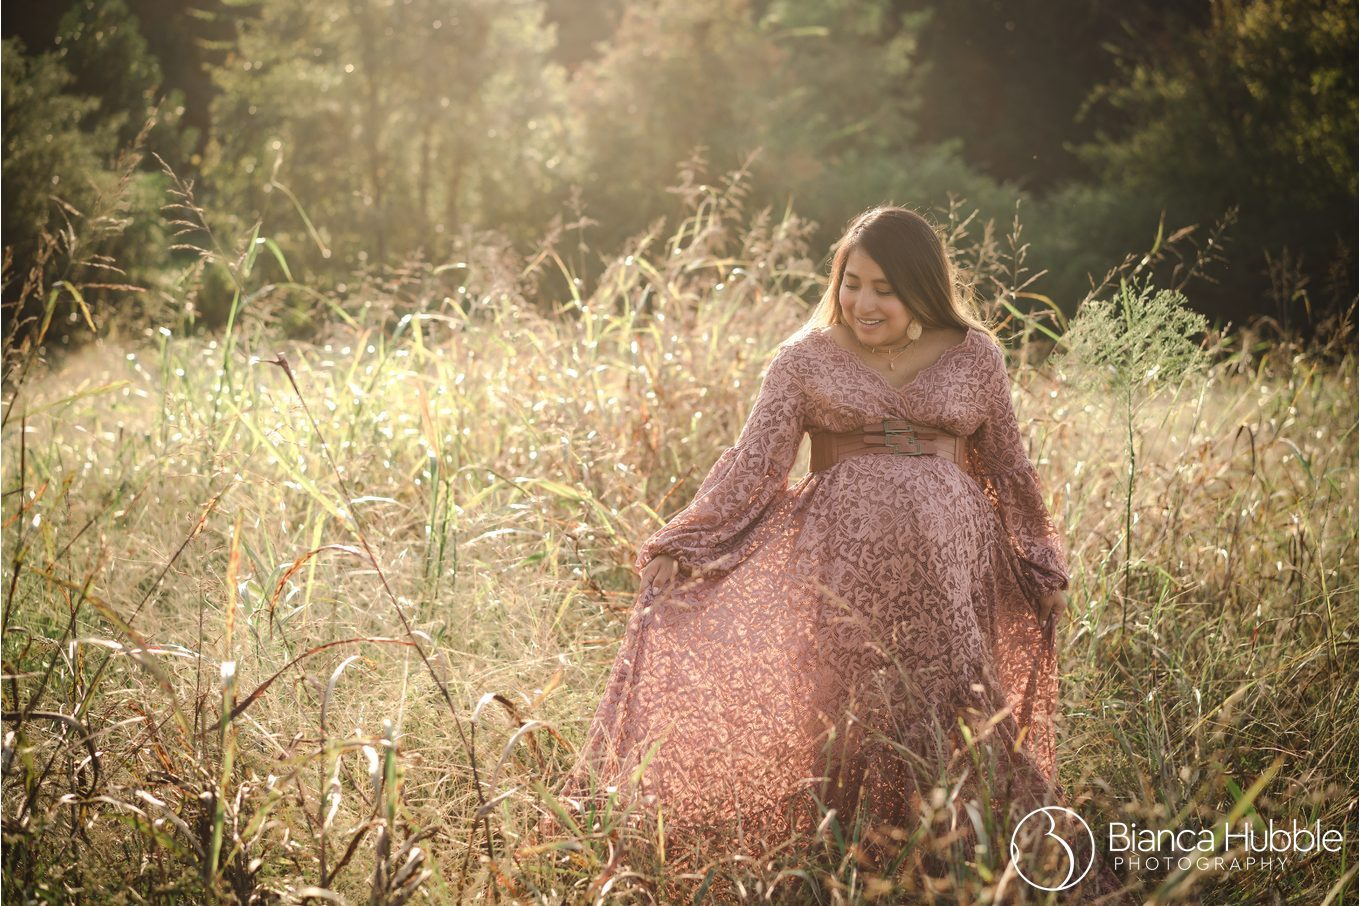 Woodstock GA Maternity Photographer